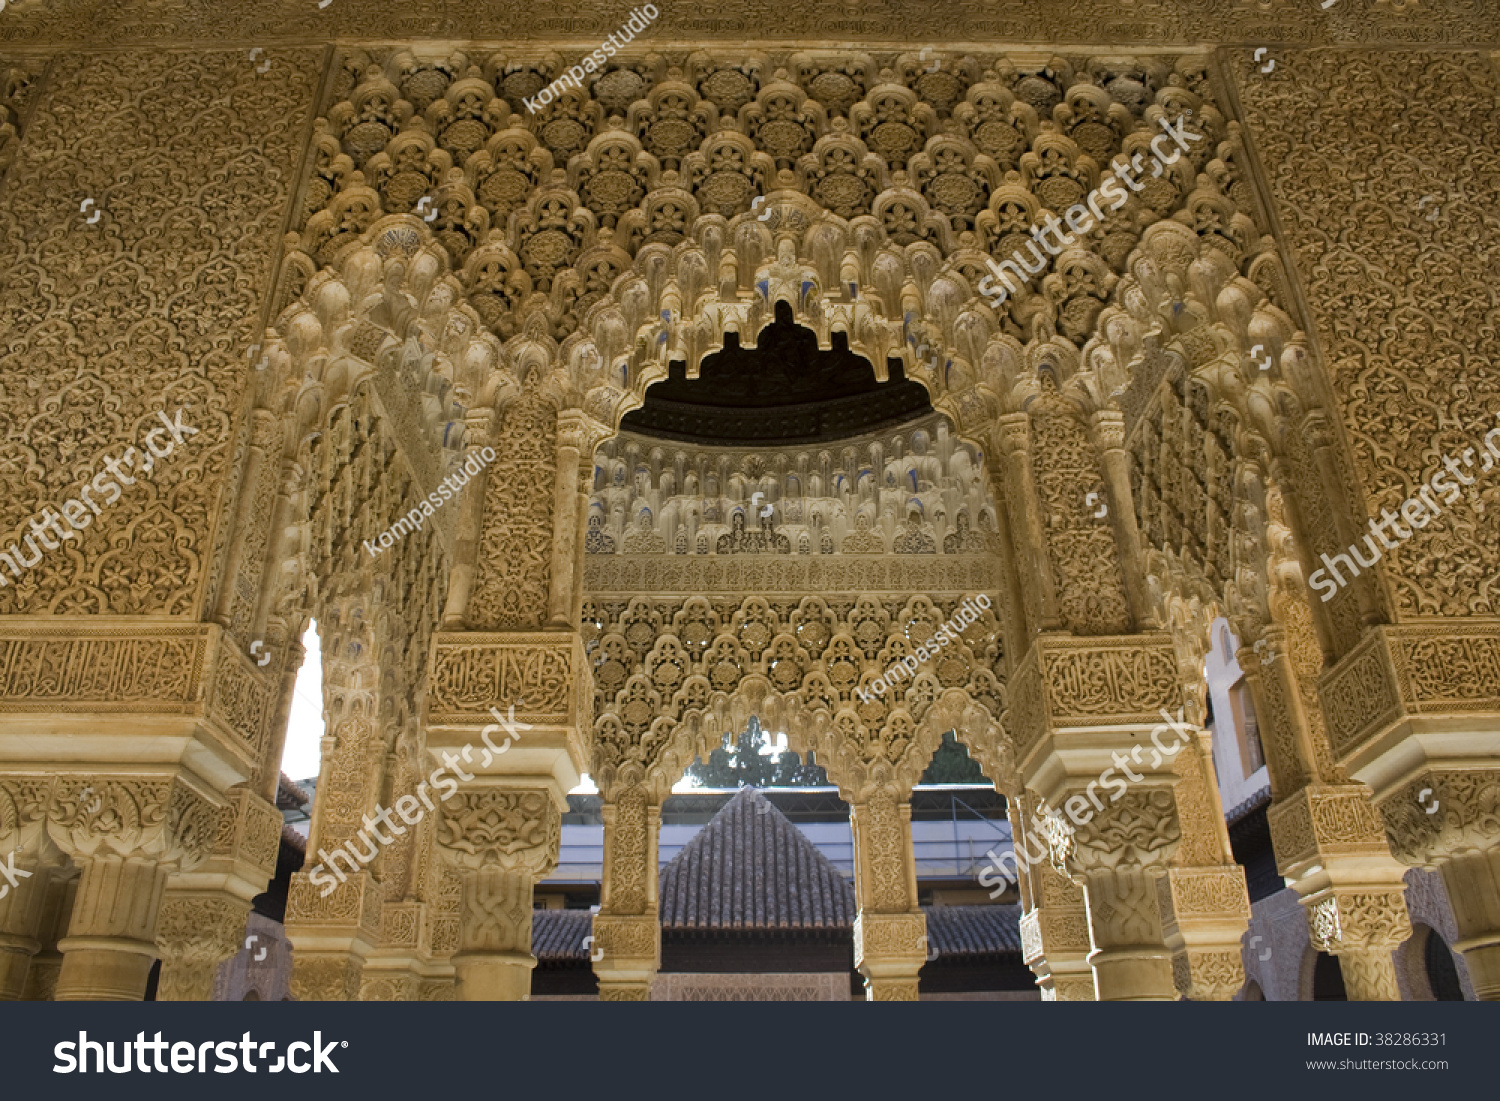 The Patio De Los Leones (Court Of The Lions) In Alhambra Palace, Granada Stoc...